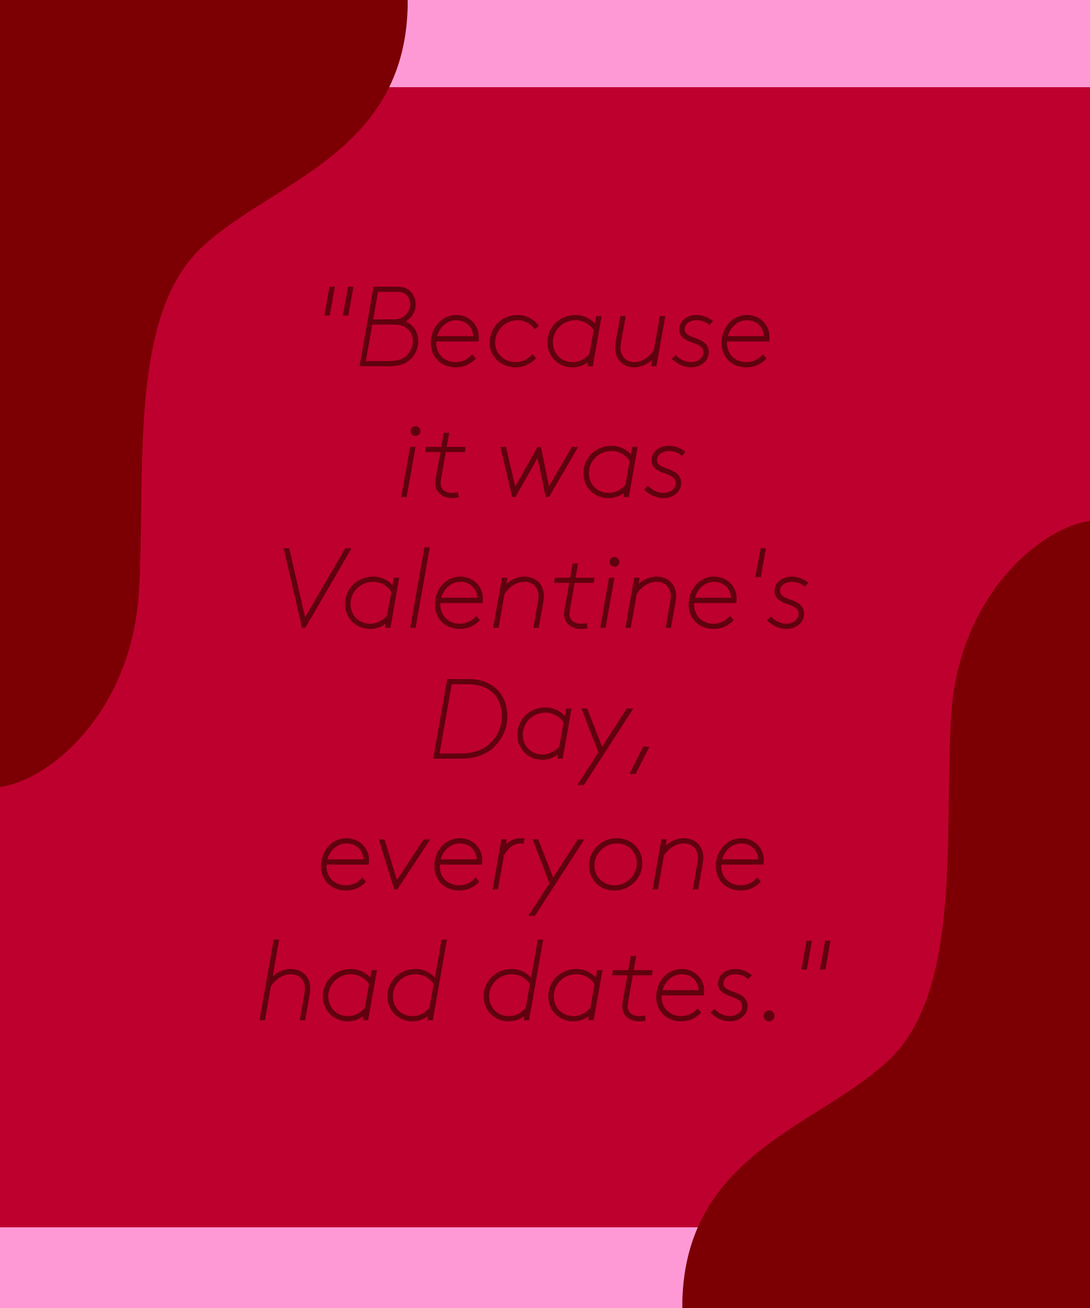 12 valentine's day horror stories that will convince you to stay